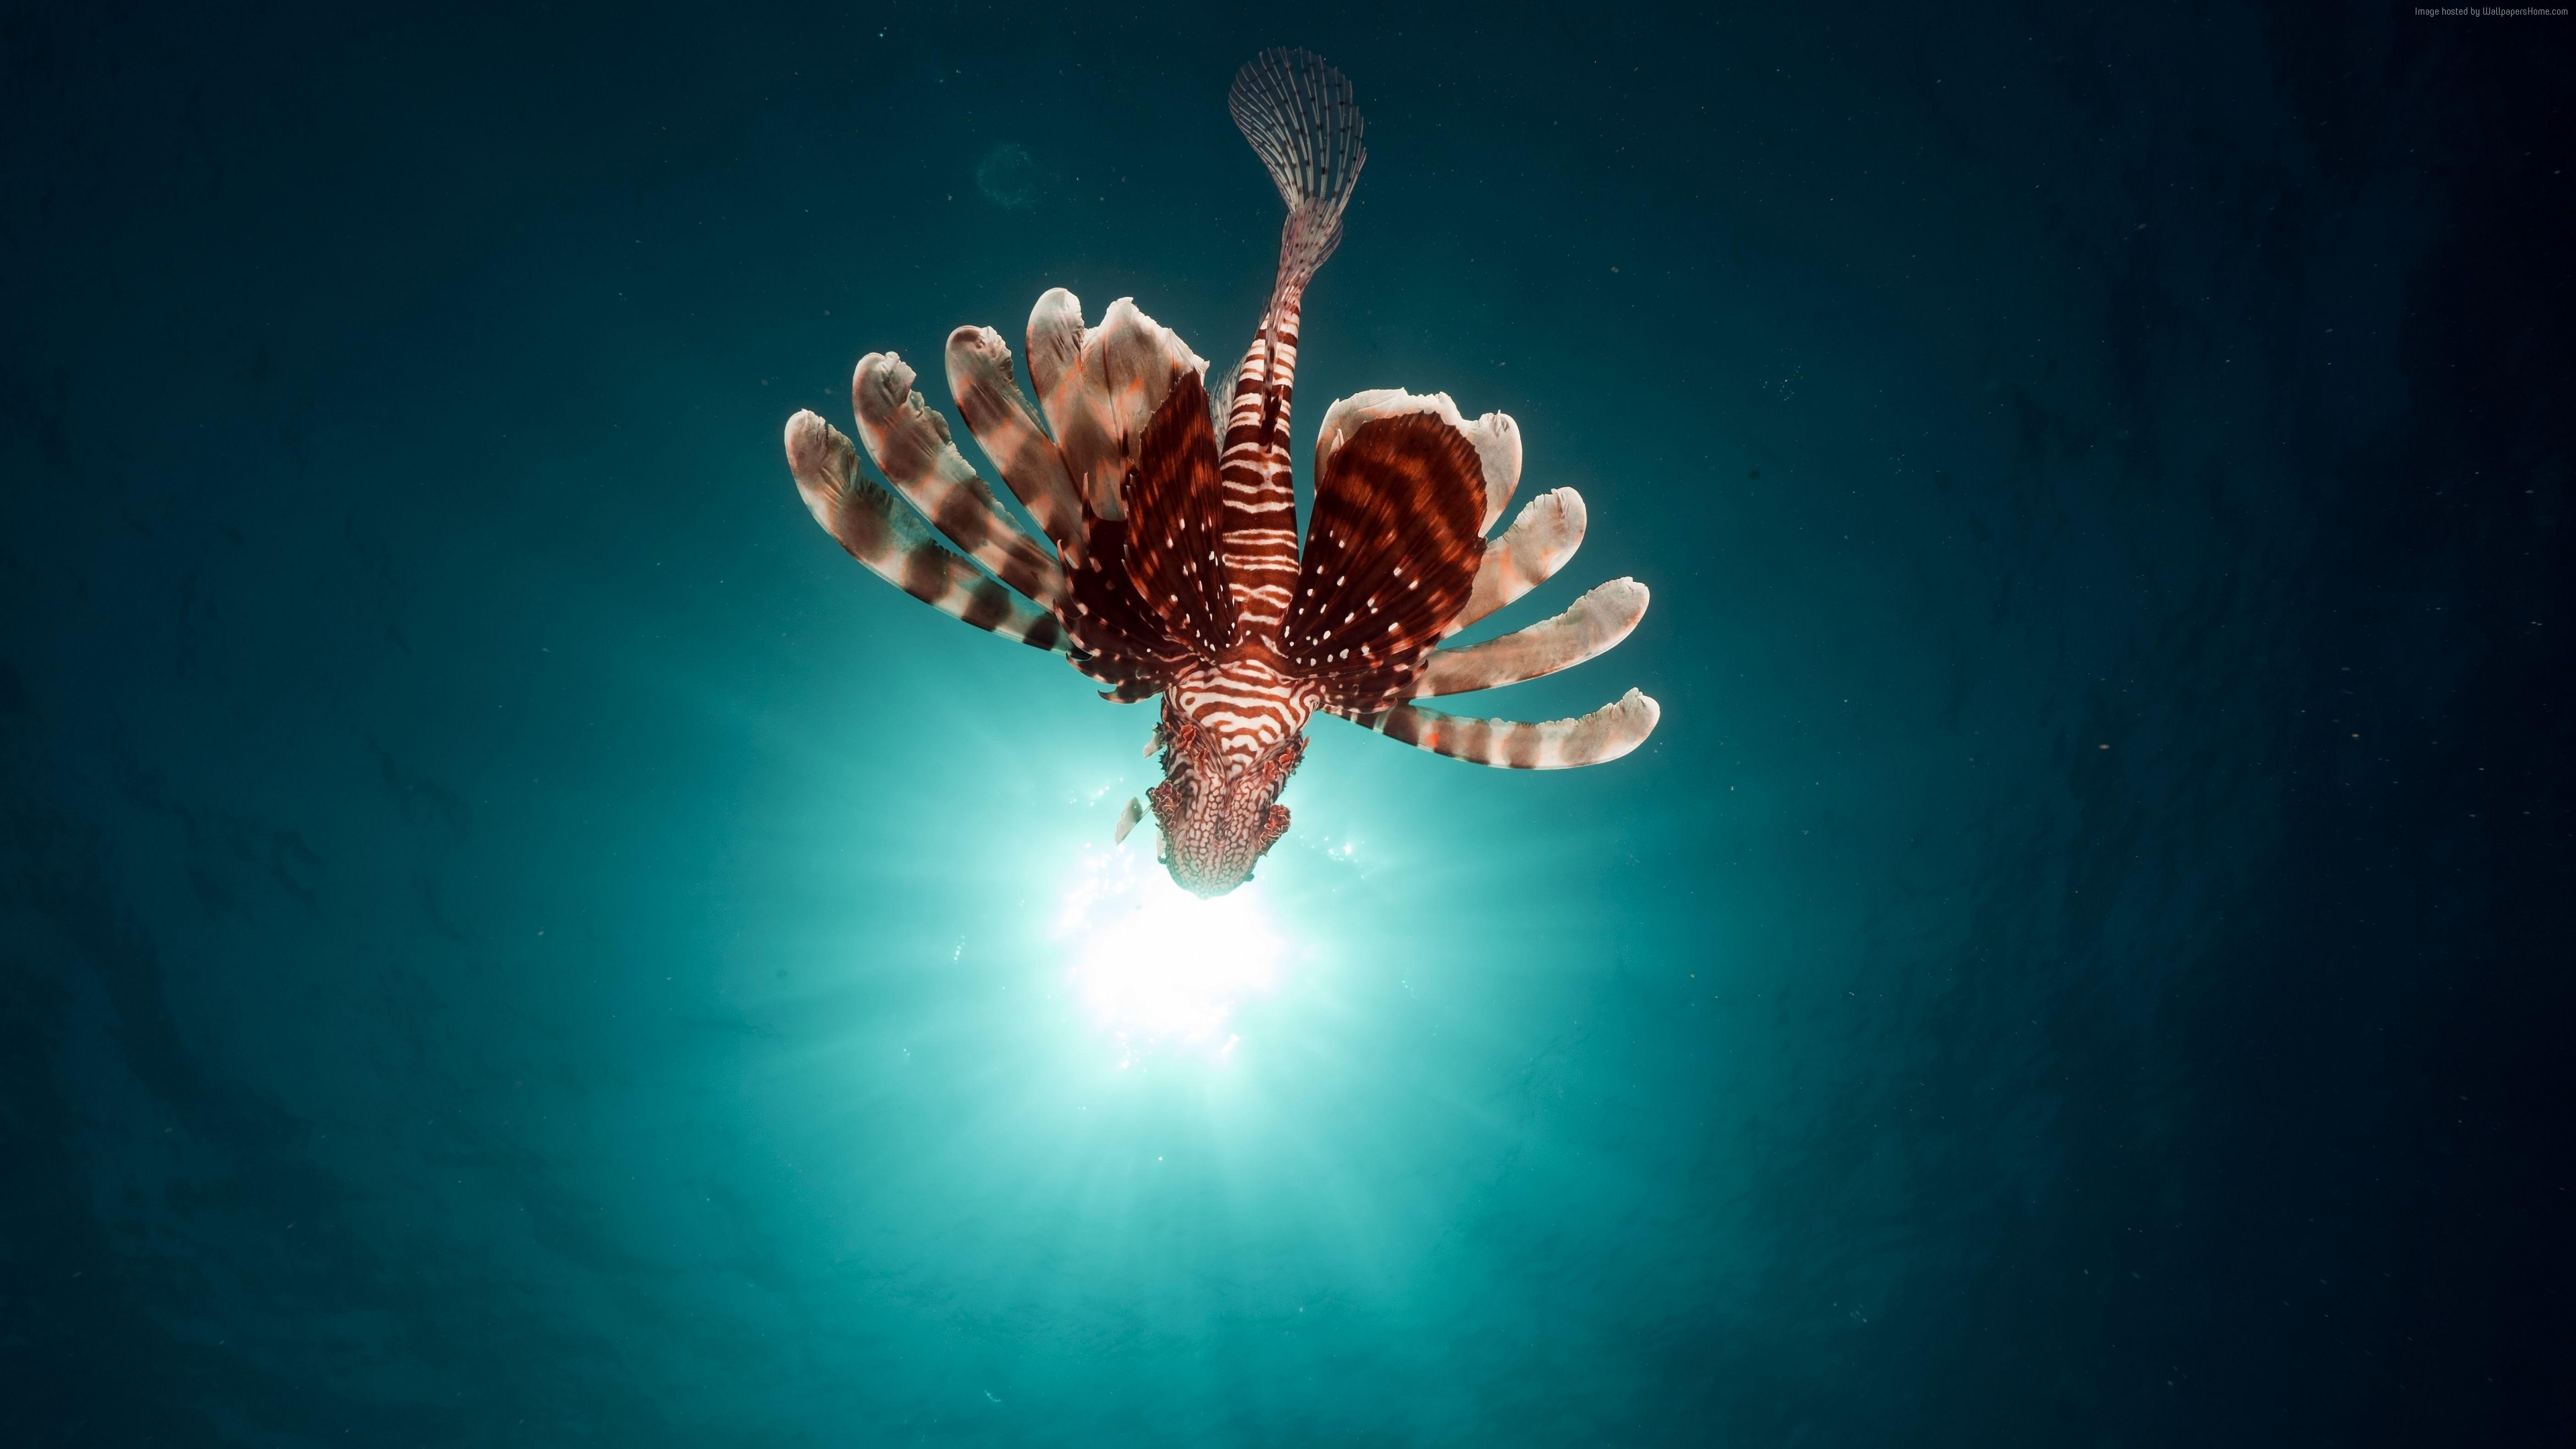 Wallpaper lionfish, fish, red sea, underwater, flying fish, Travel